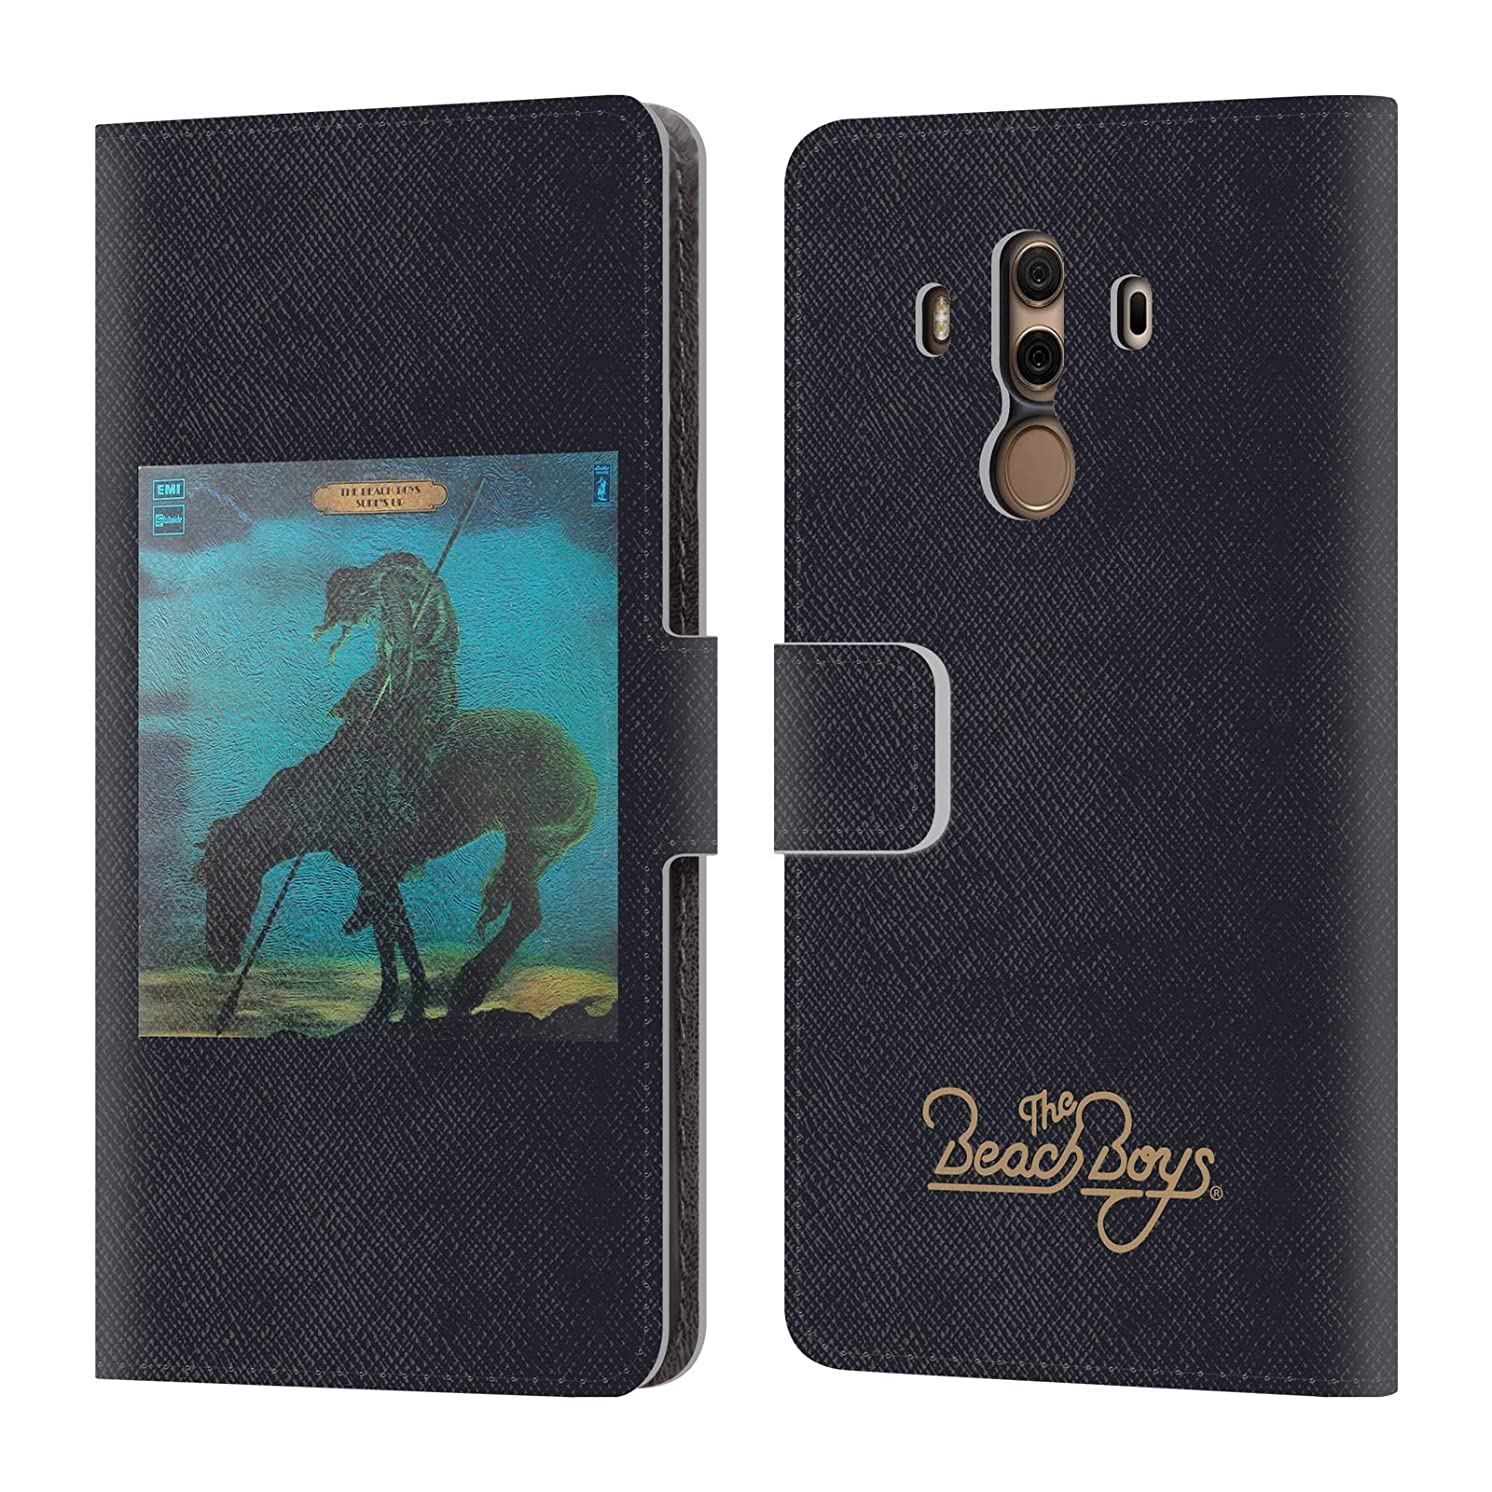 Official The Beach Boys Surfs Up Album Cover Art Leather Book Wallet Case Cover for Huawei Mate 10 Pro